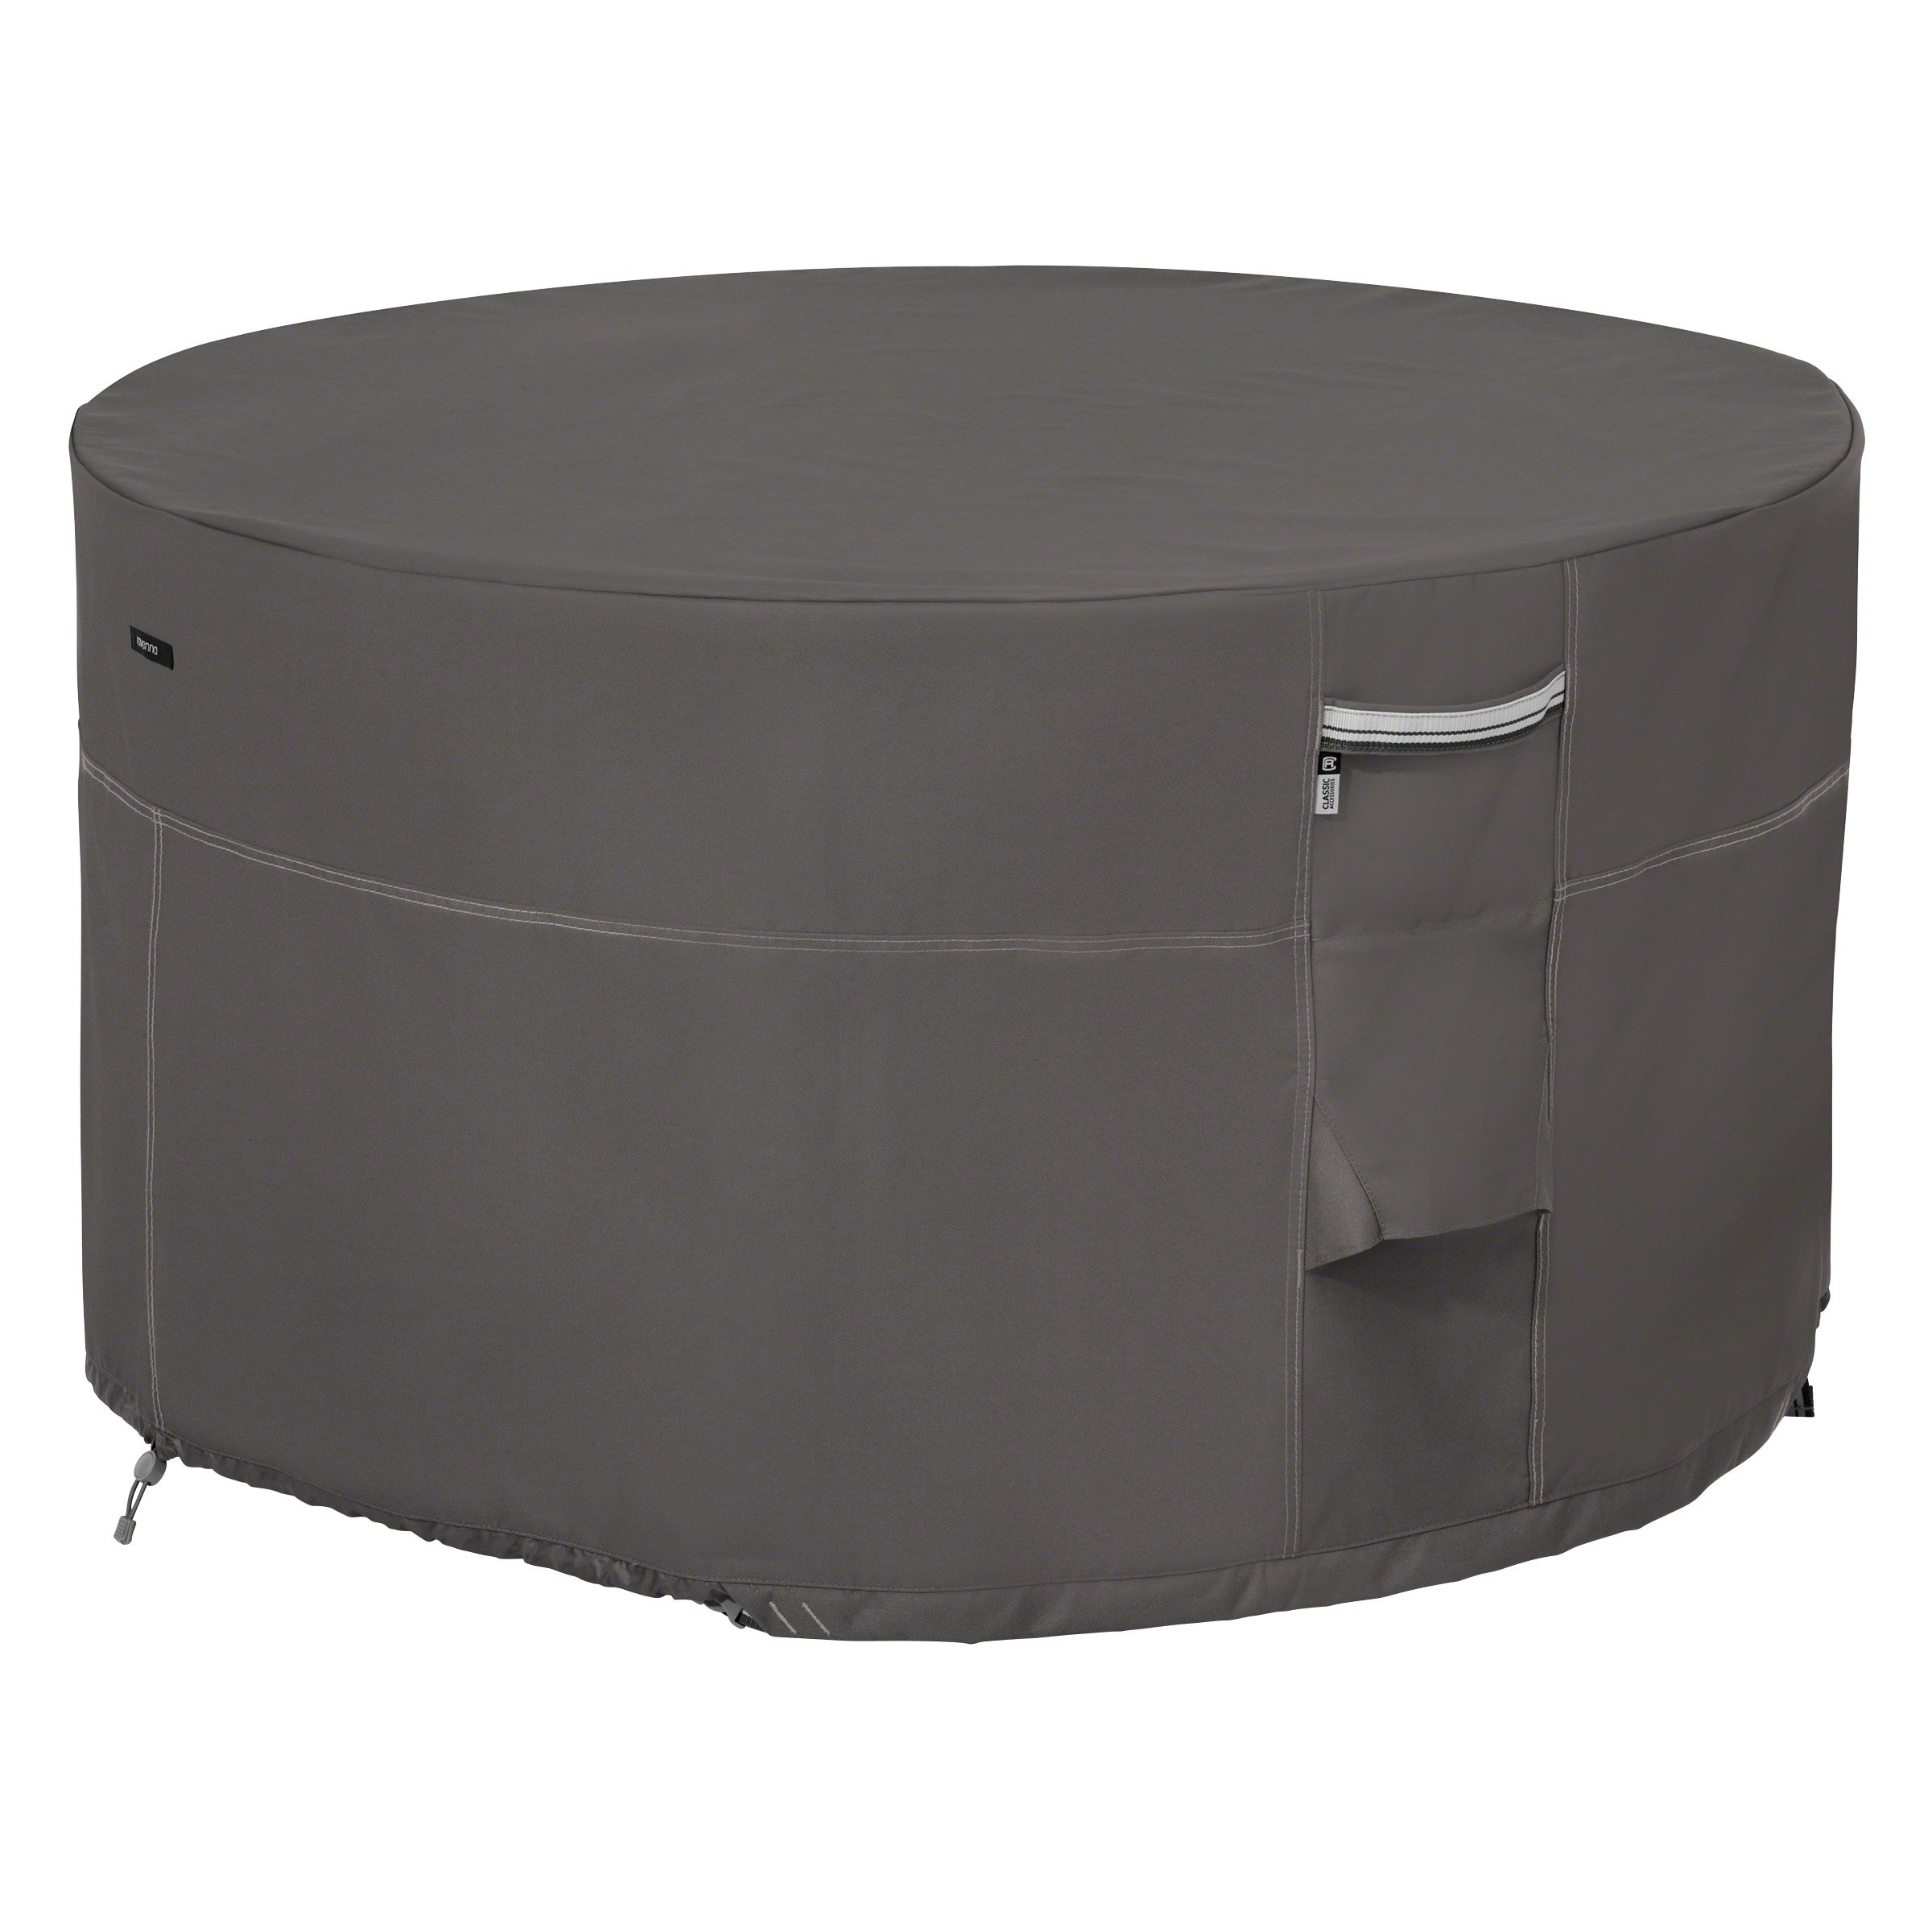 Classic Accessories Ravenna 42 Quot Round Fire Pit Table Cover